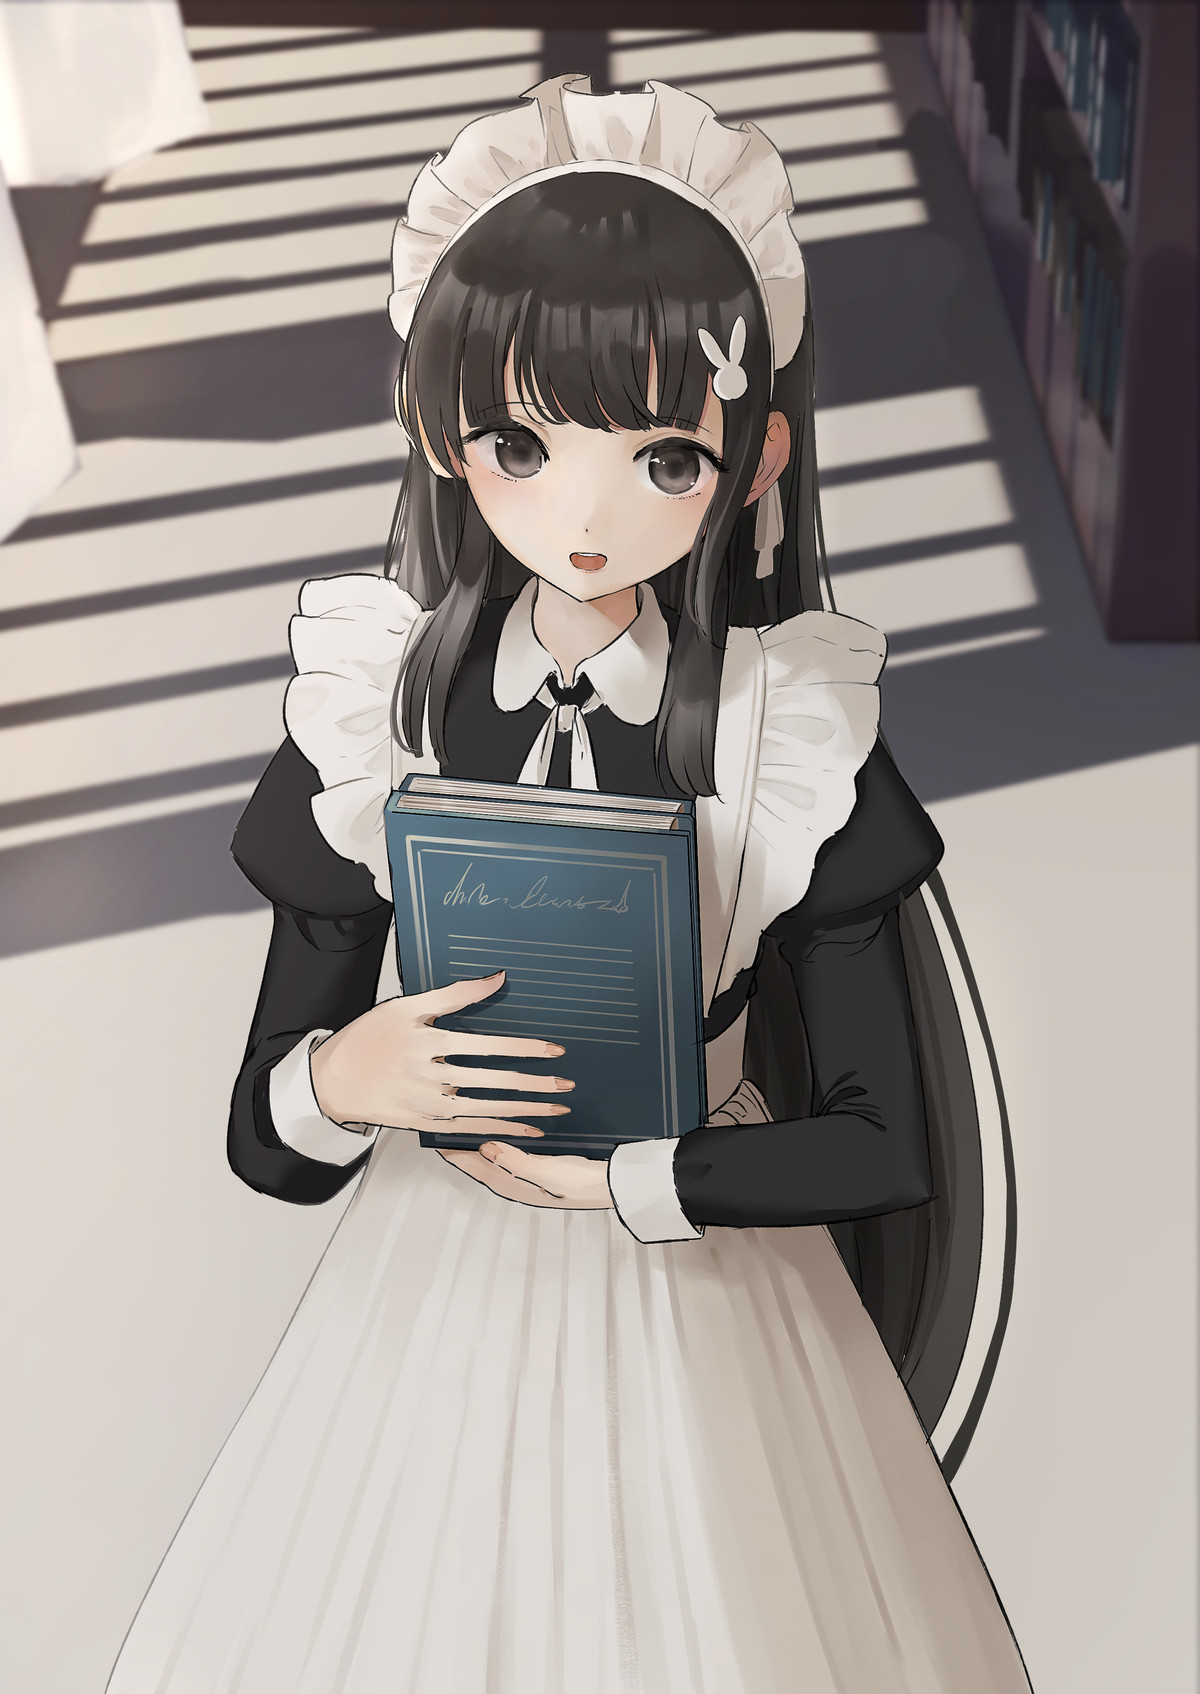 Maid March part 5. join list: MagnificentMaids (721 subs)Mention History join list:. Helose